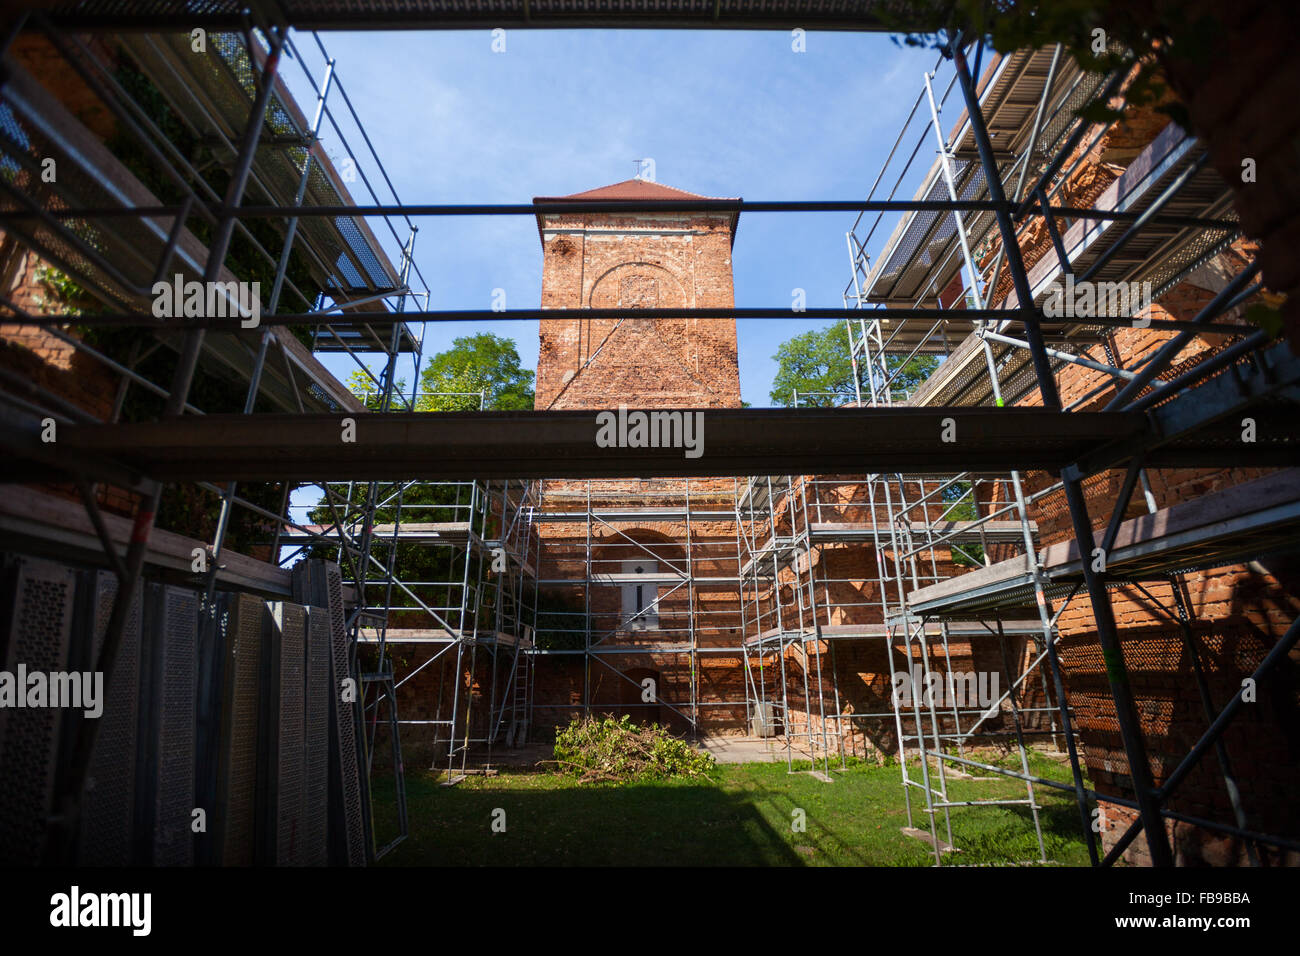 Dorfkirche (Village church), Lossow, Frankfurt (Oder), Germany Stock Photo